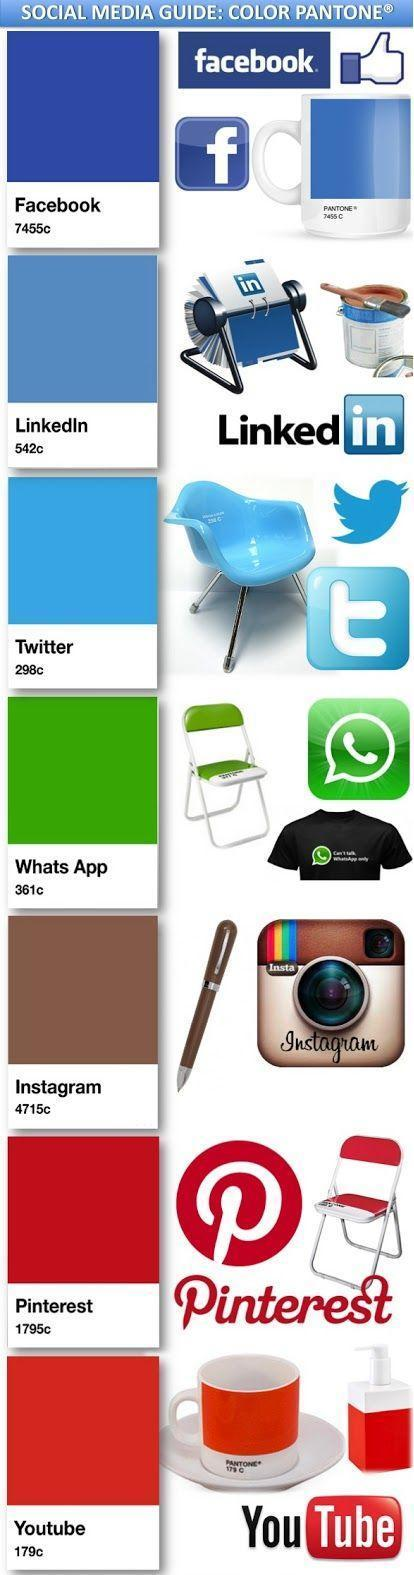 Social Media and App Pantone Colors. #Branding #Marketing #Infographic... | Social nEtwOrking news | Scoop.it